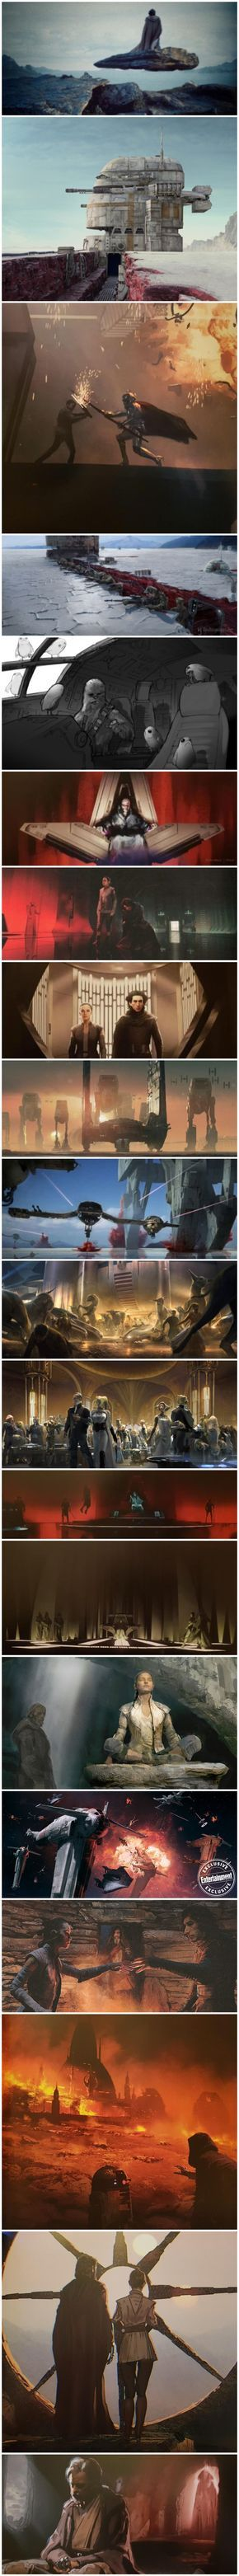 STAR WARS E p i s o d e V I I I The L A S T J E D I - concept art and pre-prduction paintings by various artists, from Lucasfilm Ltd.